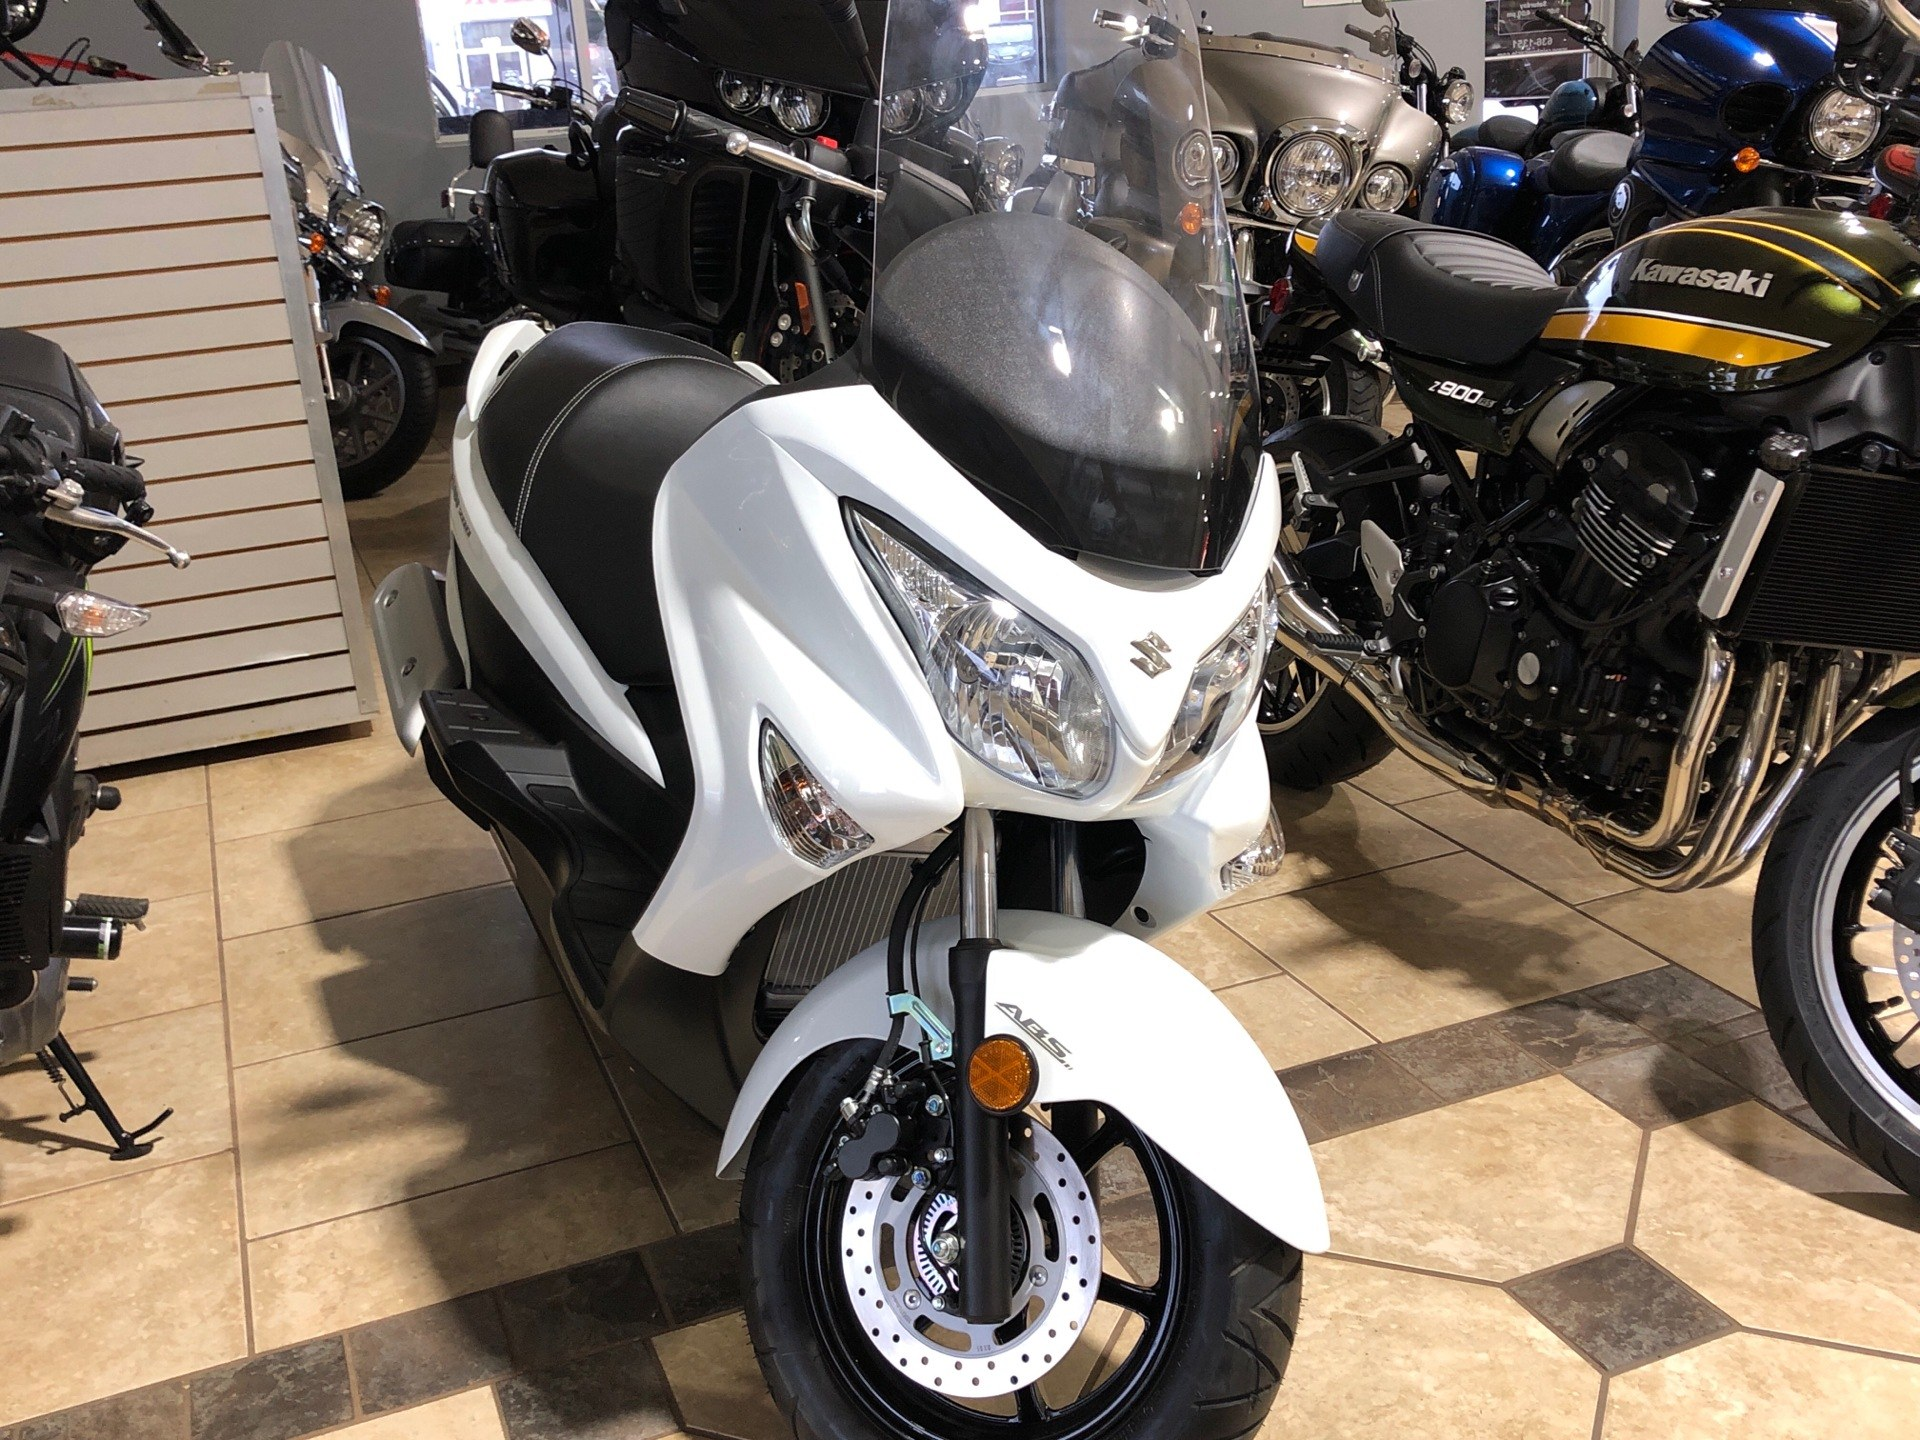 2020 Suzuki Burgman 200 in Rogers, Arkansas - Photo 2